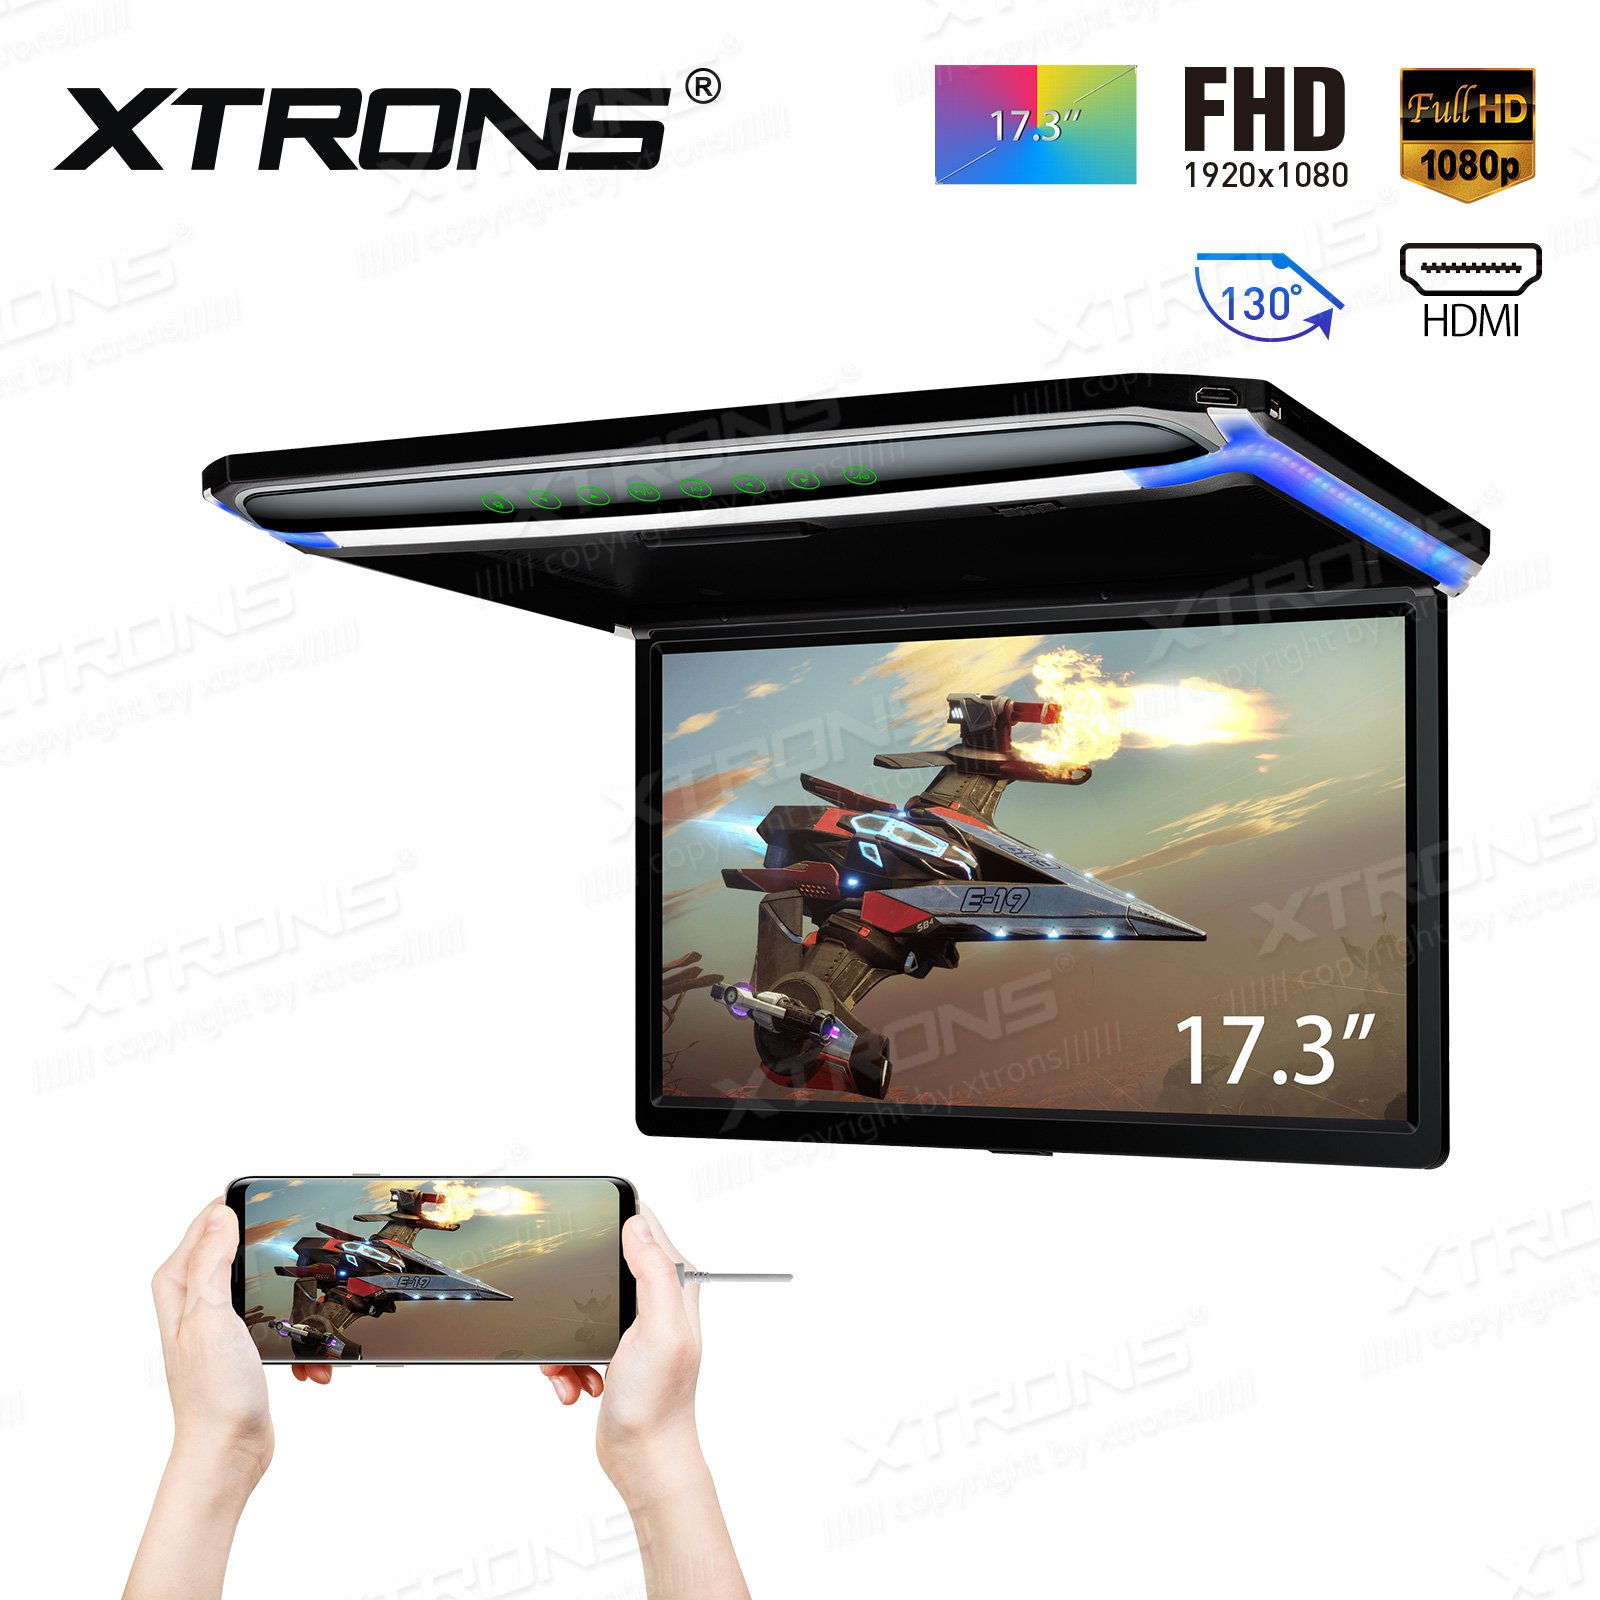 XTRONS 17.3 Inch 16:9 Ultra-Thin FHD Digital TFT Screen 1080P Video Car Overhead Player Roof Mounted Monitor HDMI Port 19201080 Full High Definition by XTRONS